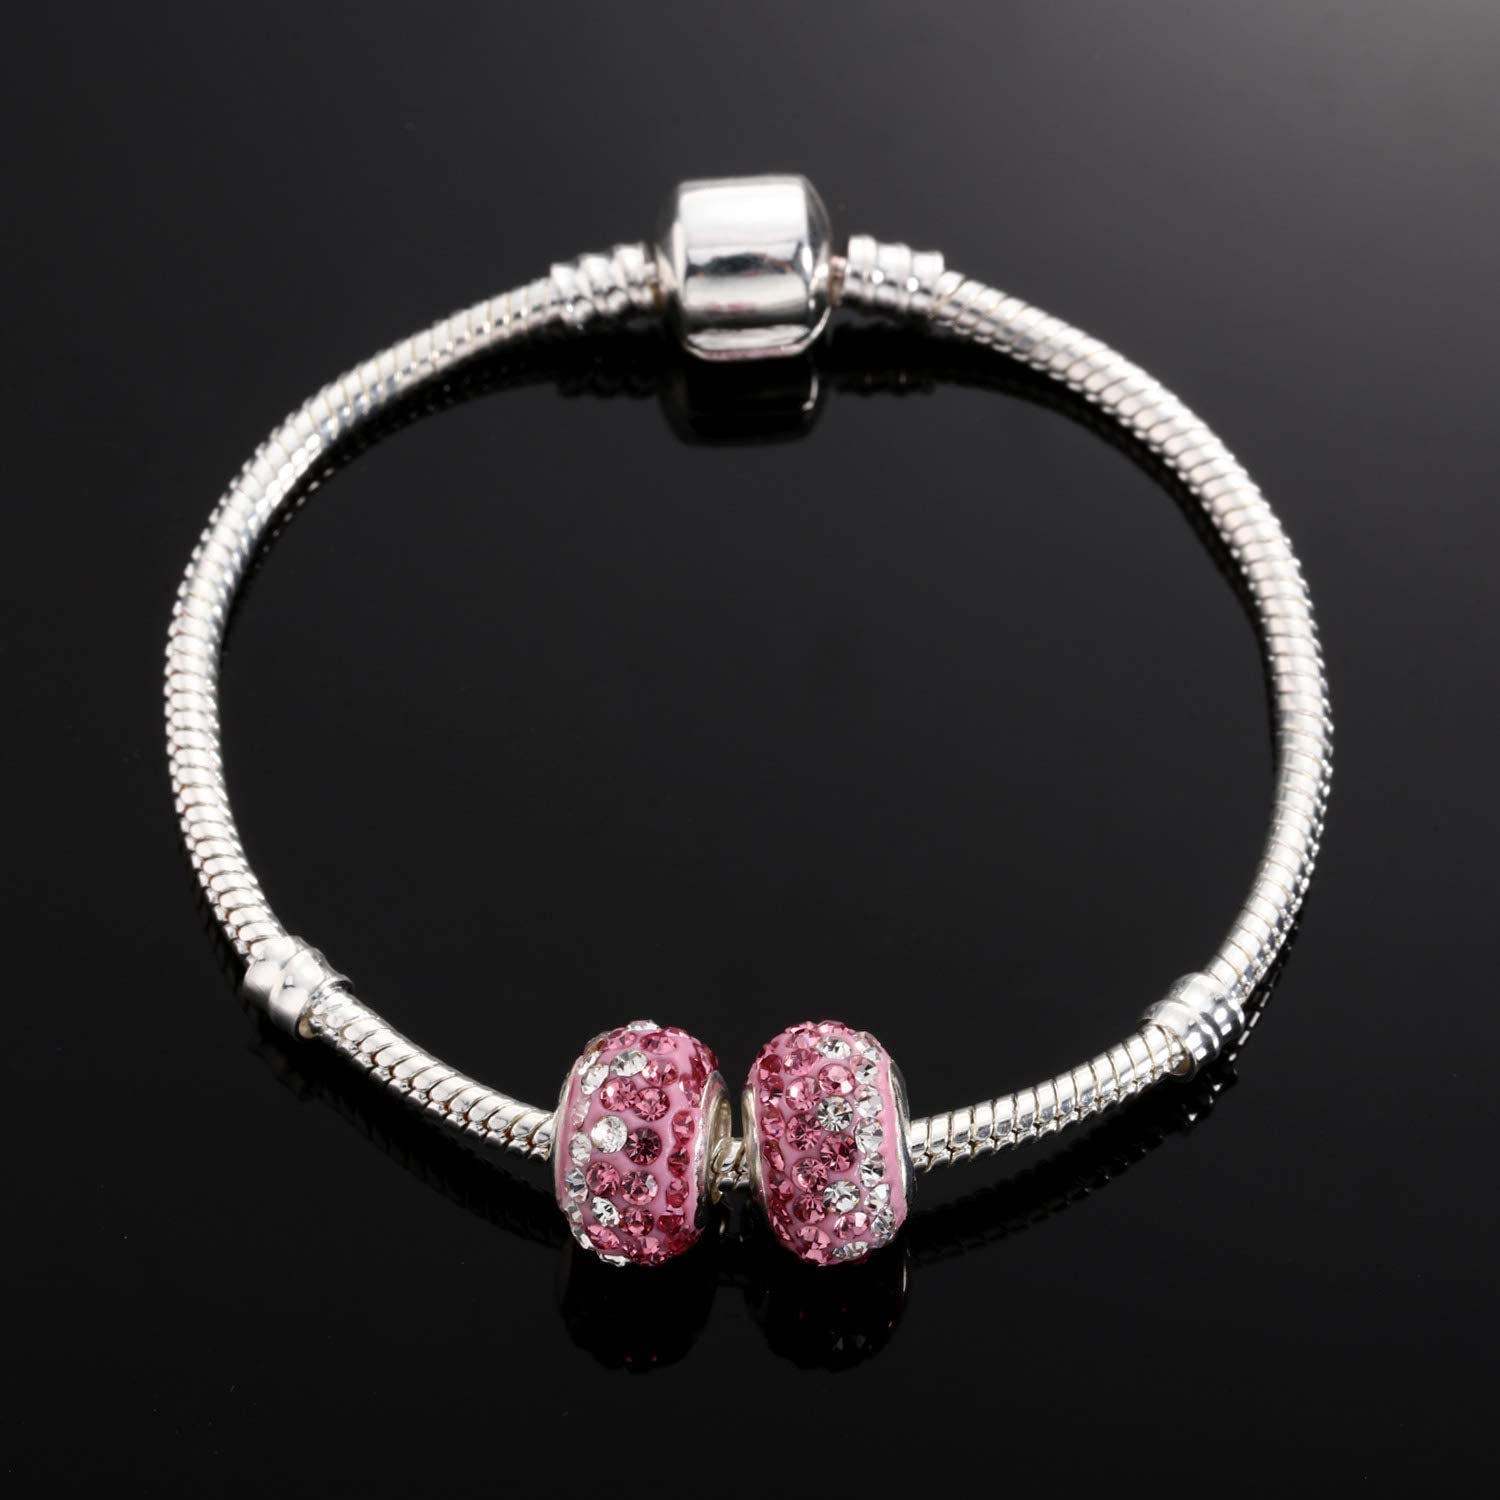 Red Hicarer 2 Pieces DIY Beads Jan-Dec Simulated Birthstone Charms Beads Crystal Charm Fit Bracelets Necklace